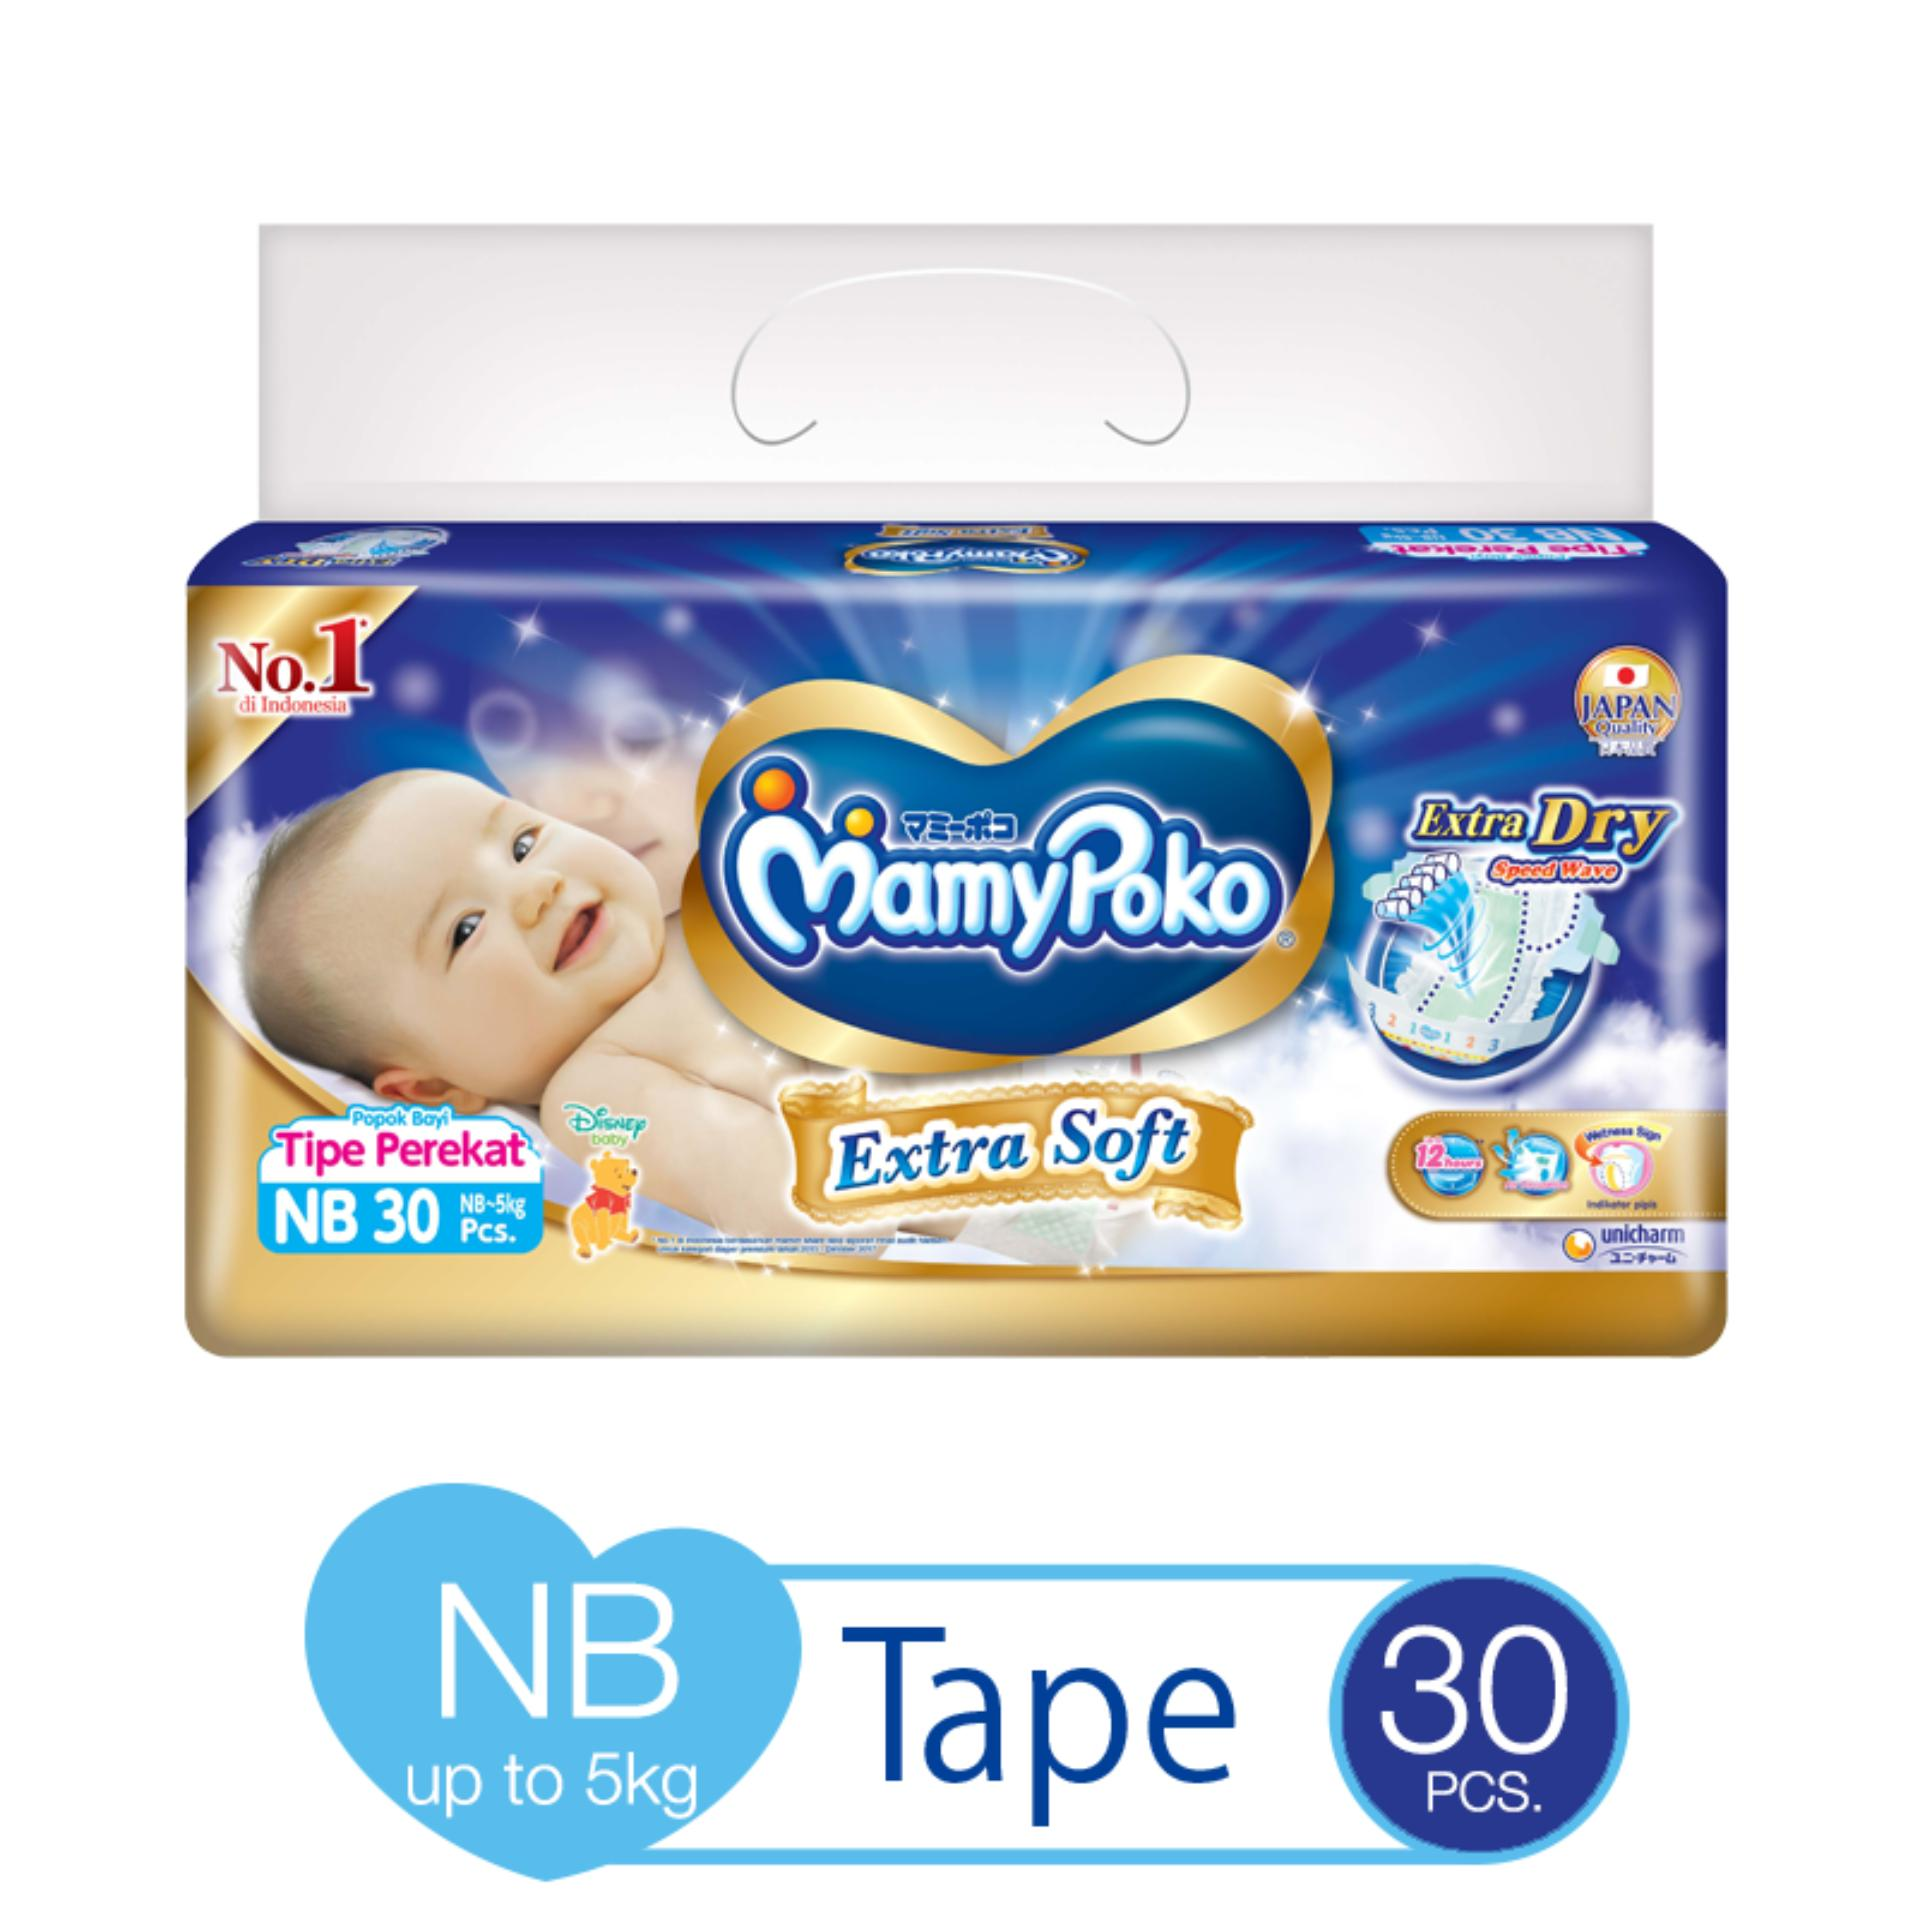 Mamypoko Extra Soft NB - 30 pcs x 1 pack (30 pcs) - Tape